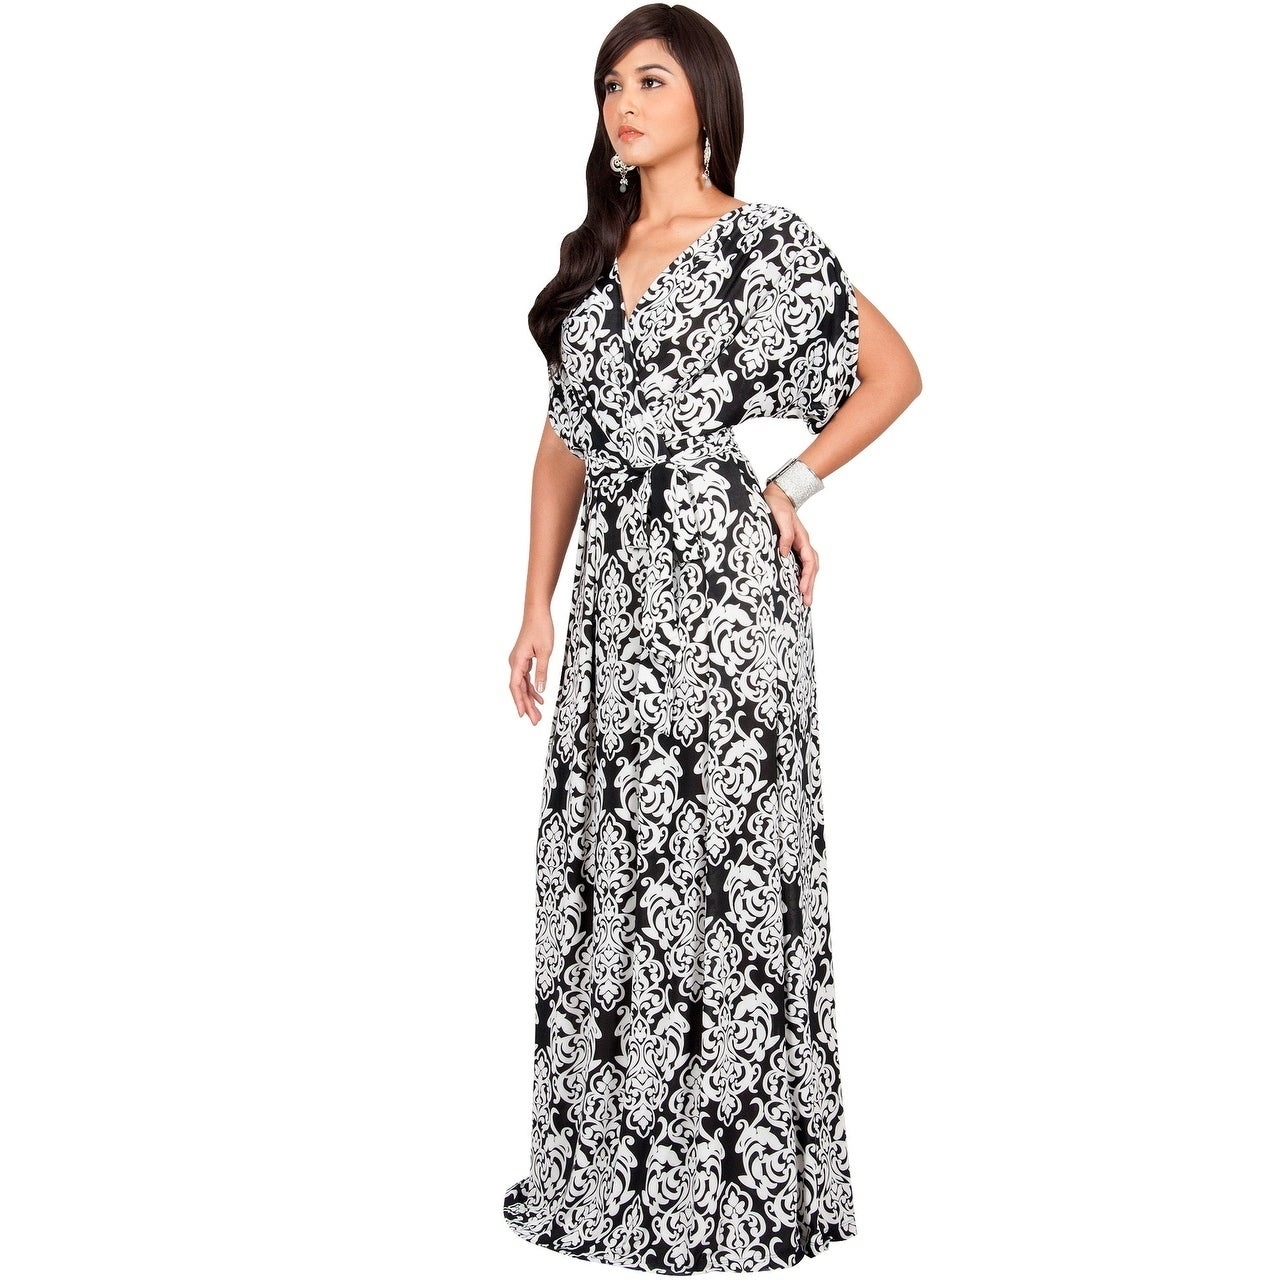 KOH KOH KOH KOH Women's Spandex Blend Long Lace Printed Formal Short Sleeve Maxi Dress 24a98f